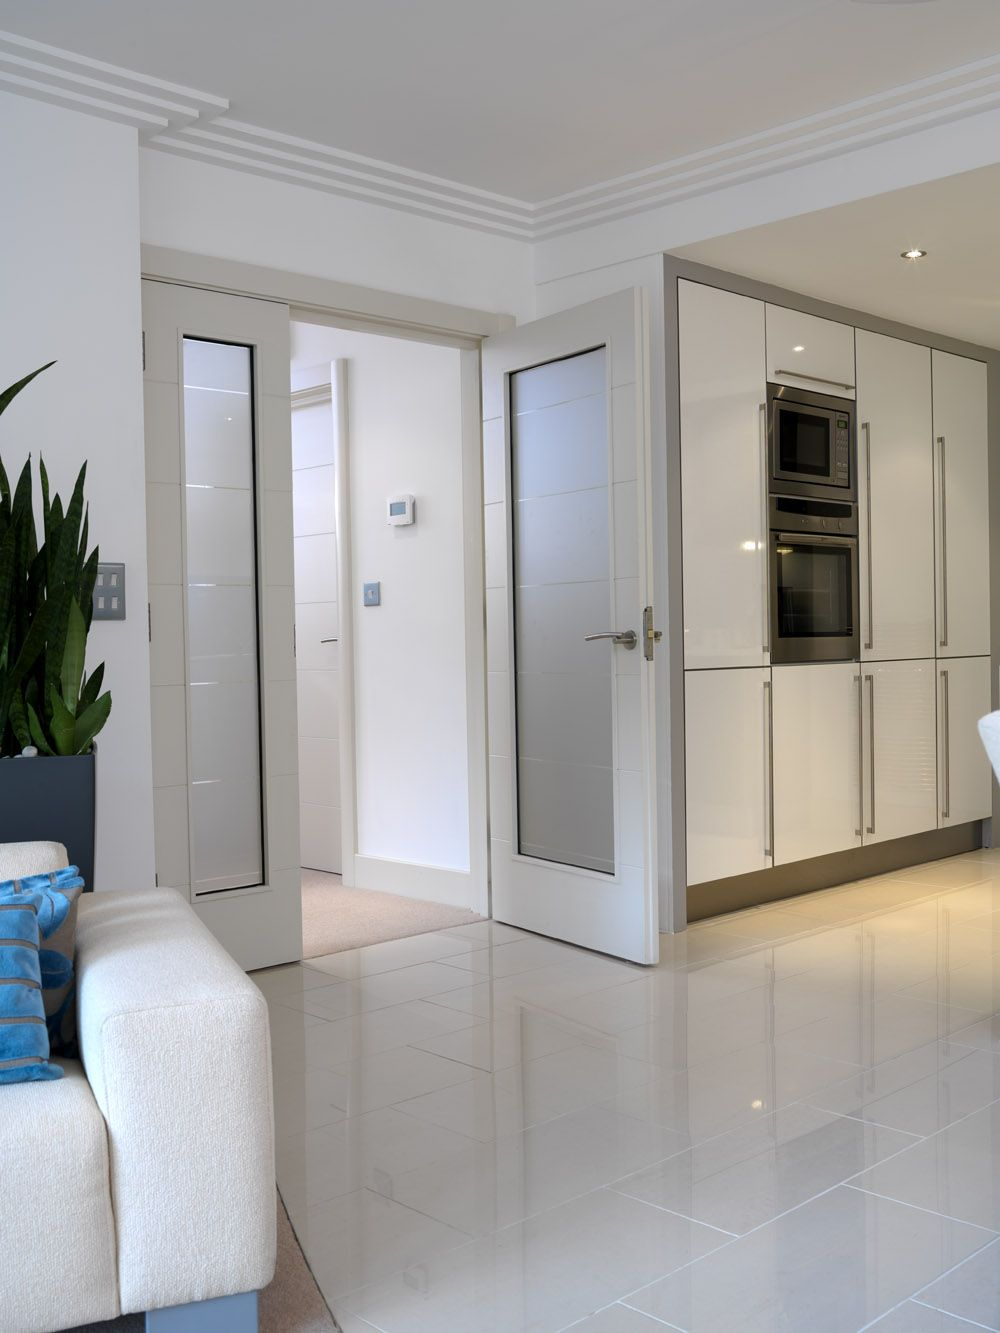 Modern Interior Doors Ideas 14: Gorgeous White Glazed Internal Door Pair. #whitedoors JB